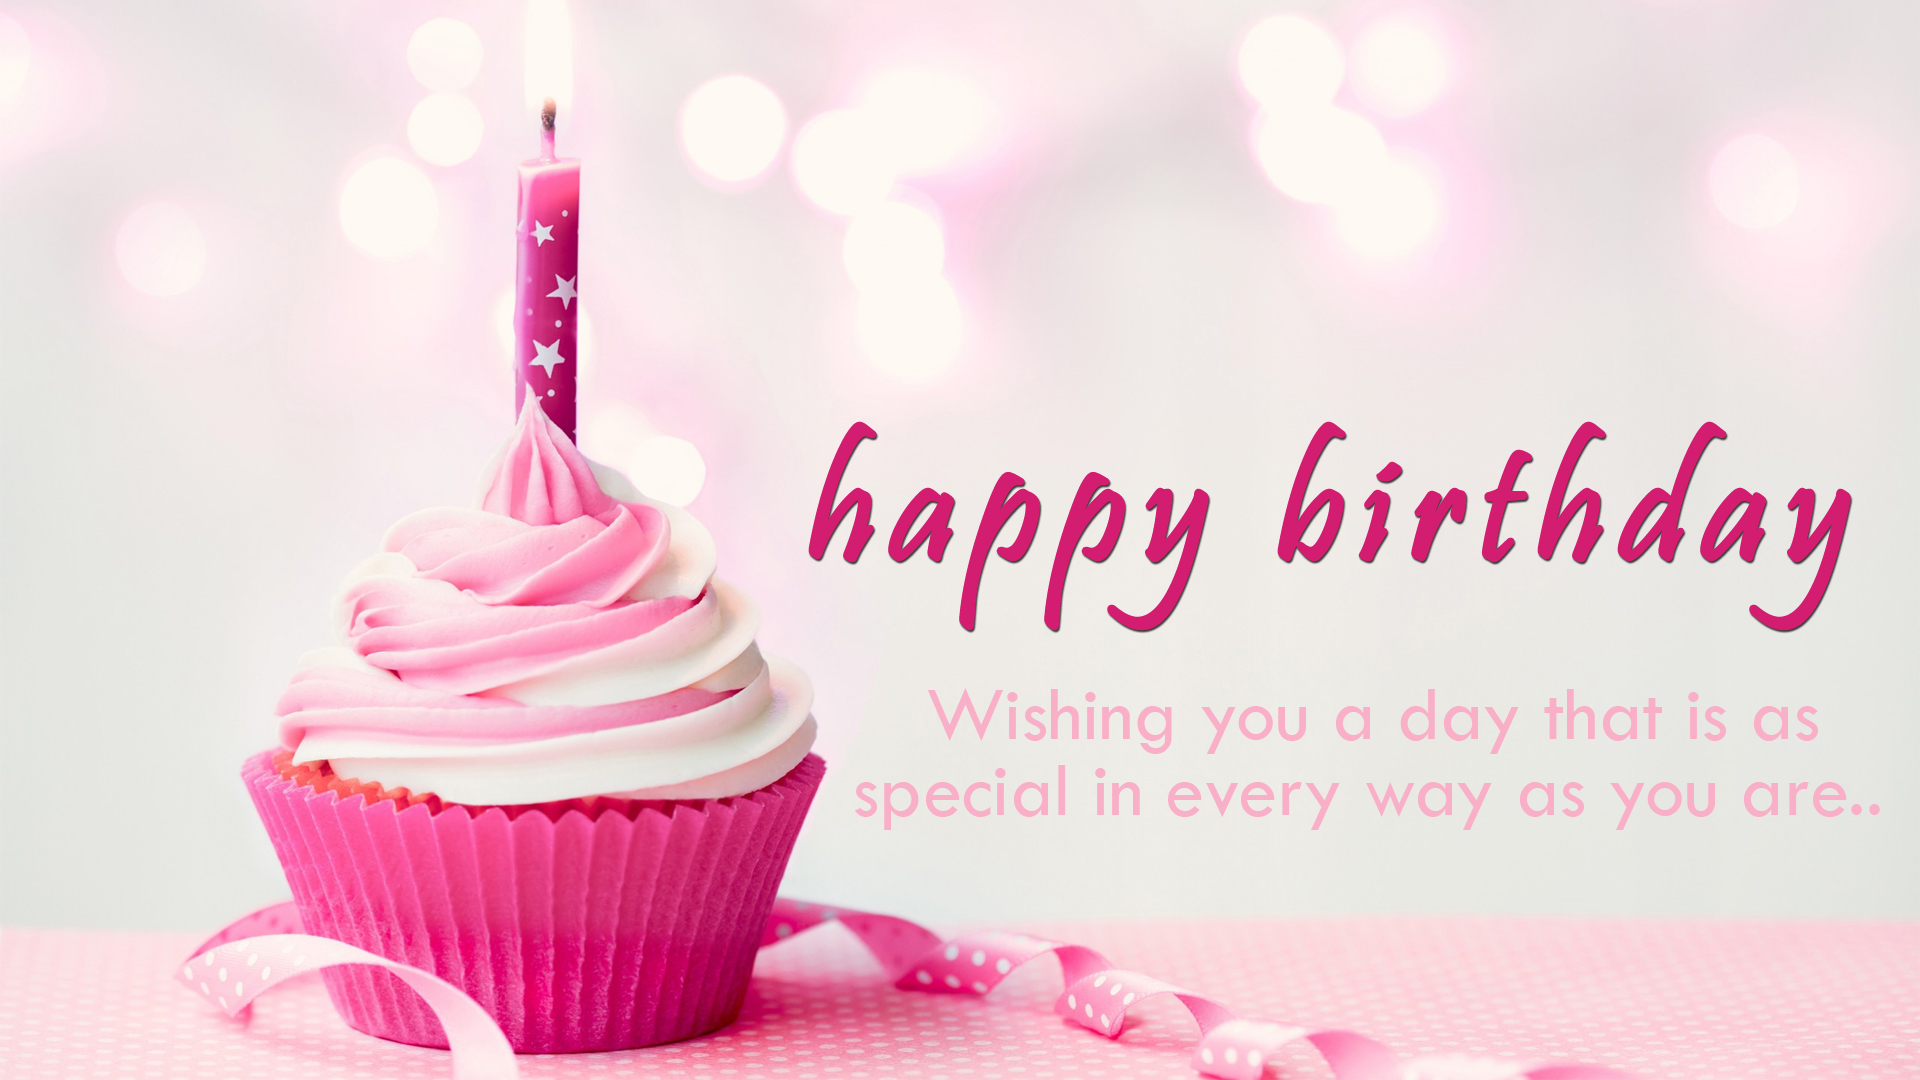 birthday message background ; Happy_Birthday_Wishes_Greeting_HD_Wallpapers_Background